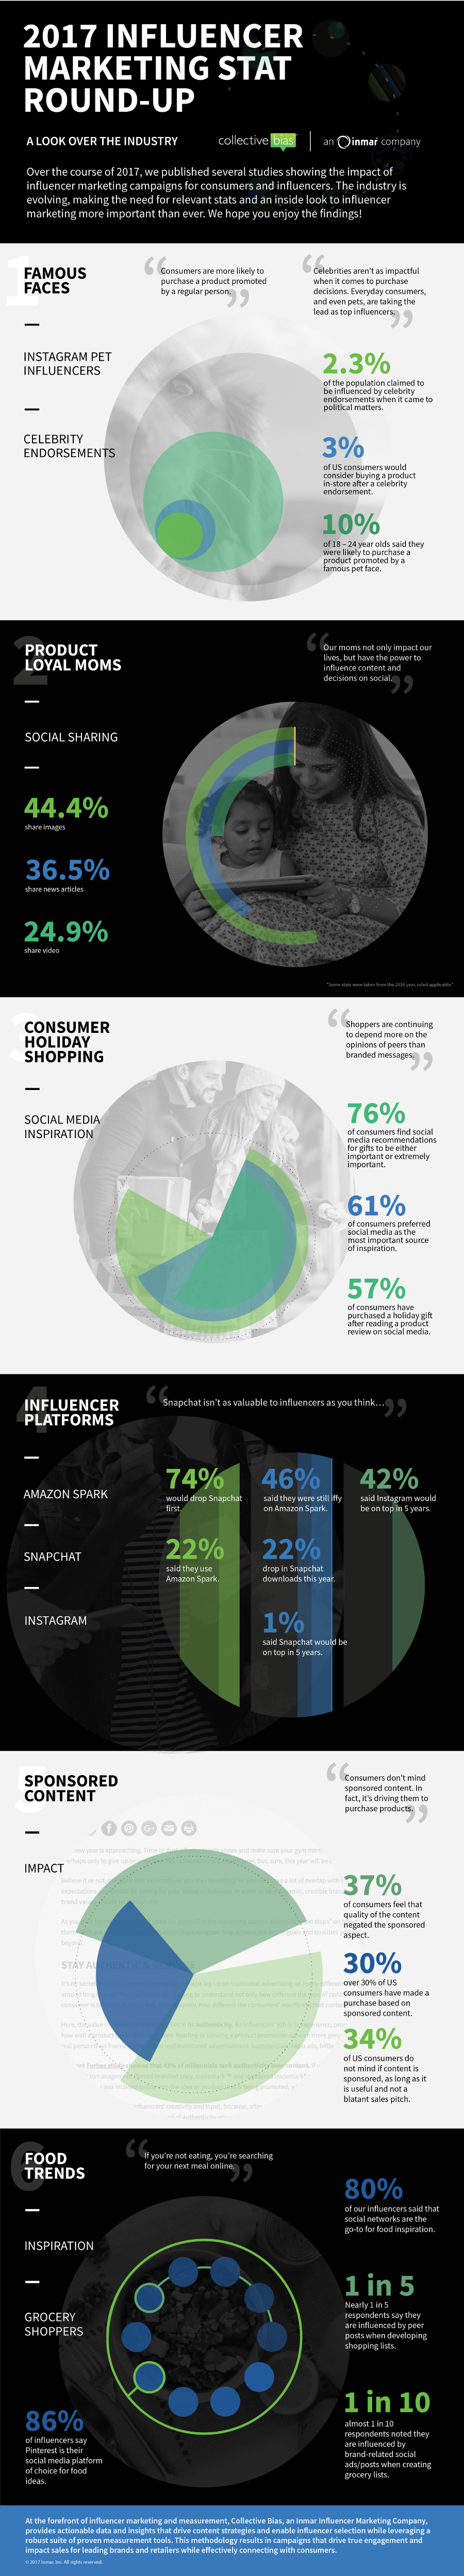 Top Influencer Marketing Trends of 2017